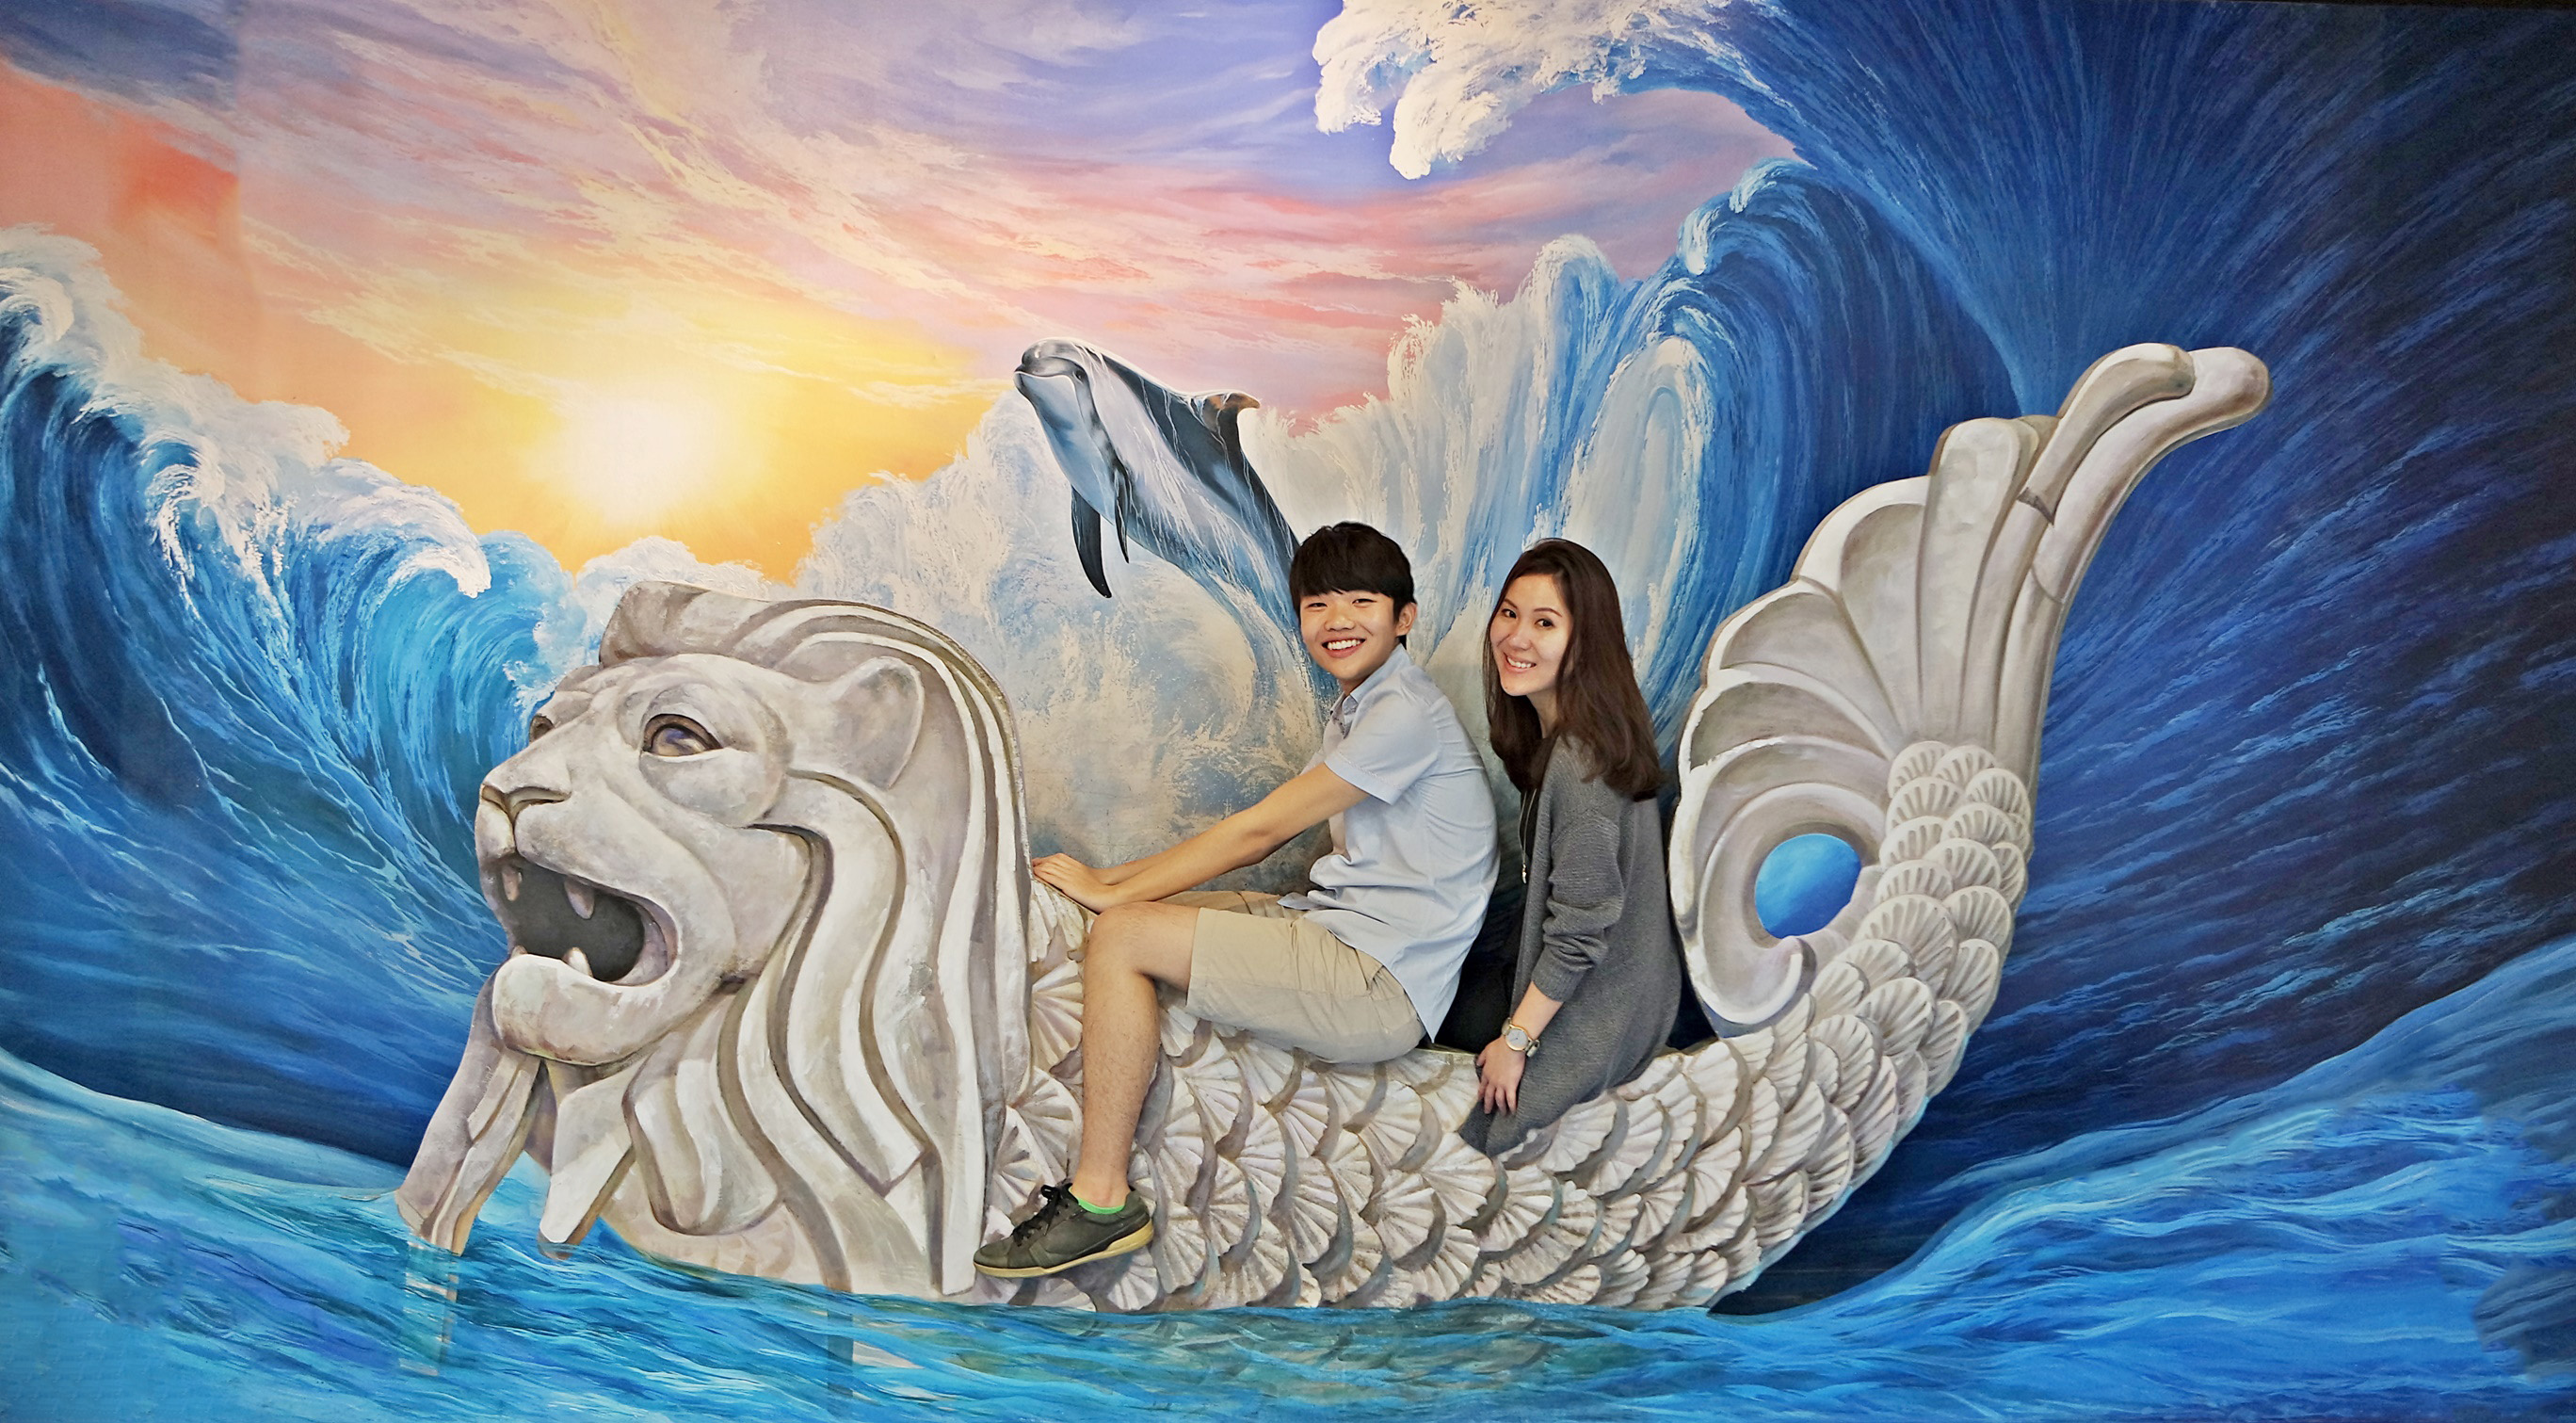 Pleased To Find A Merlion Boat Inside The Museum Now I Can Ride Hahahaha